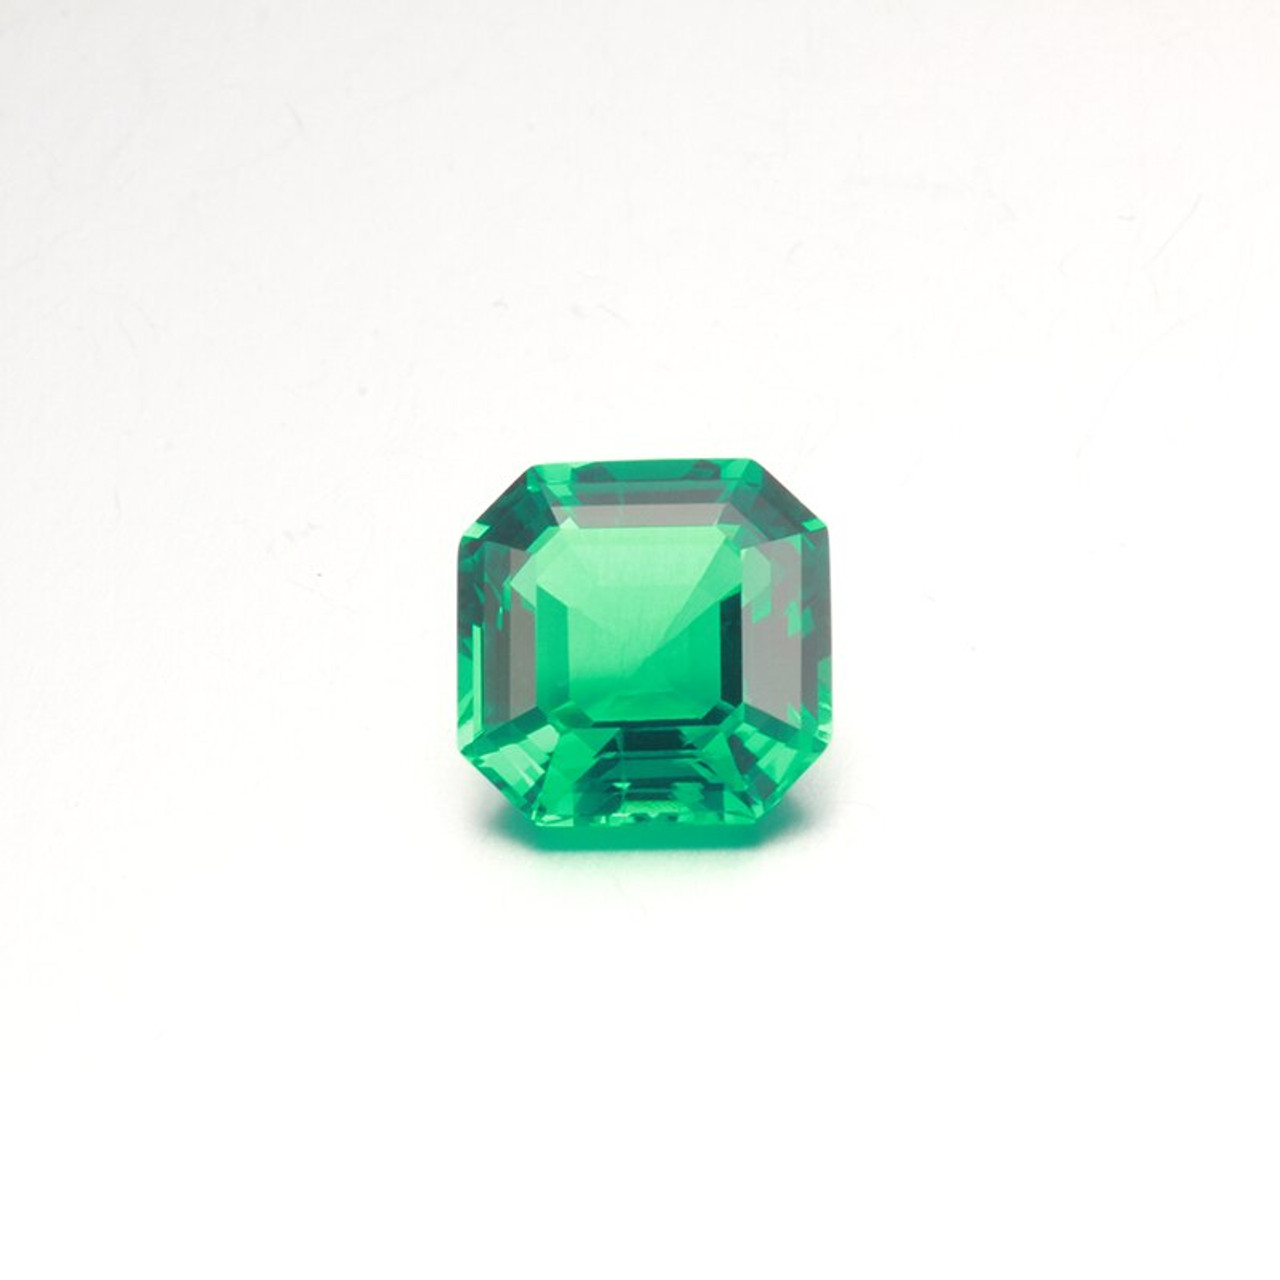 Details about  /925 Sterling Silver Natural Octagon Cut 10ct Colombian Emerald Gemstone Ad Ring